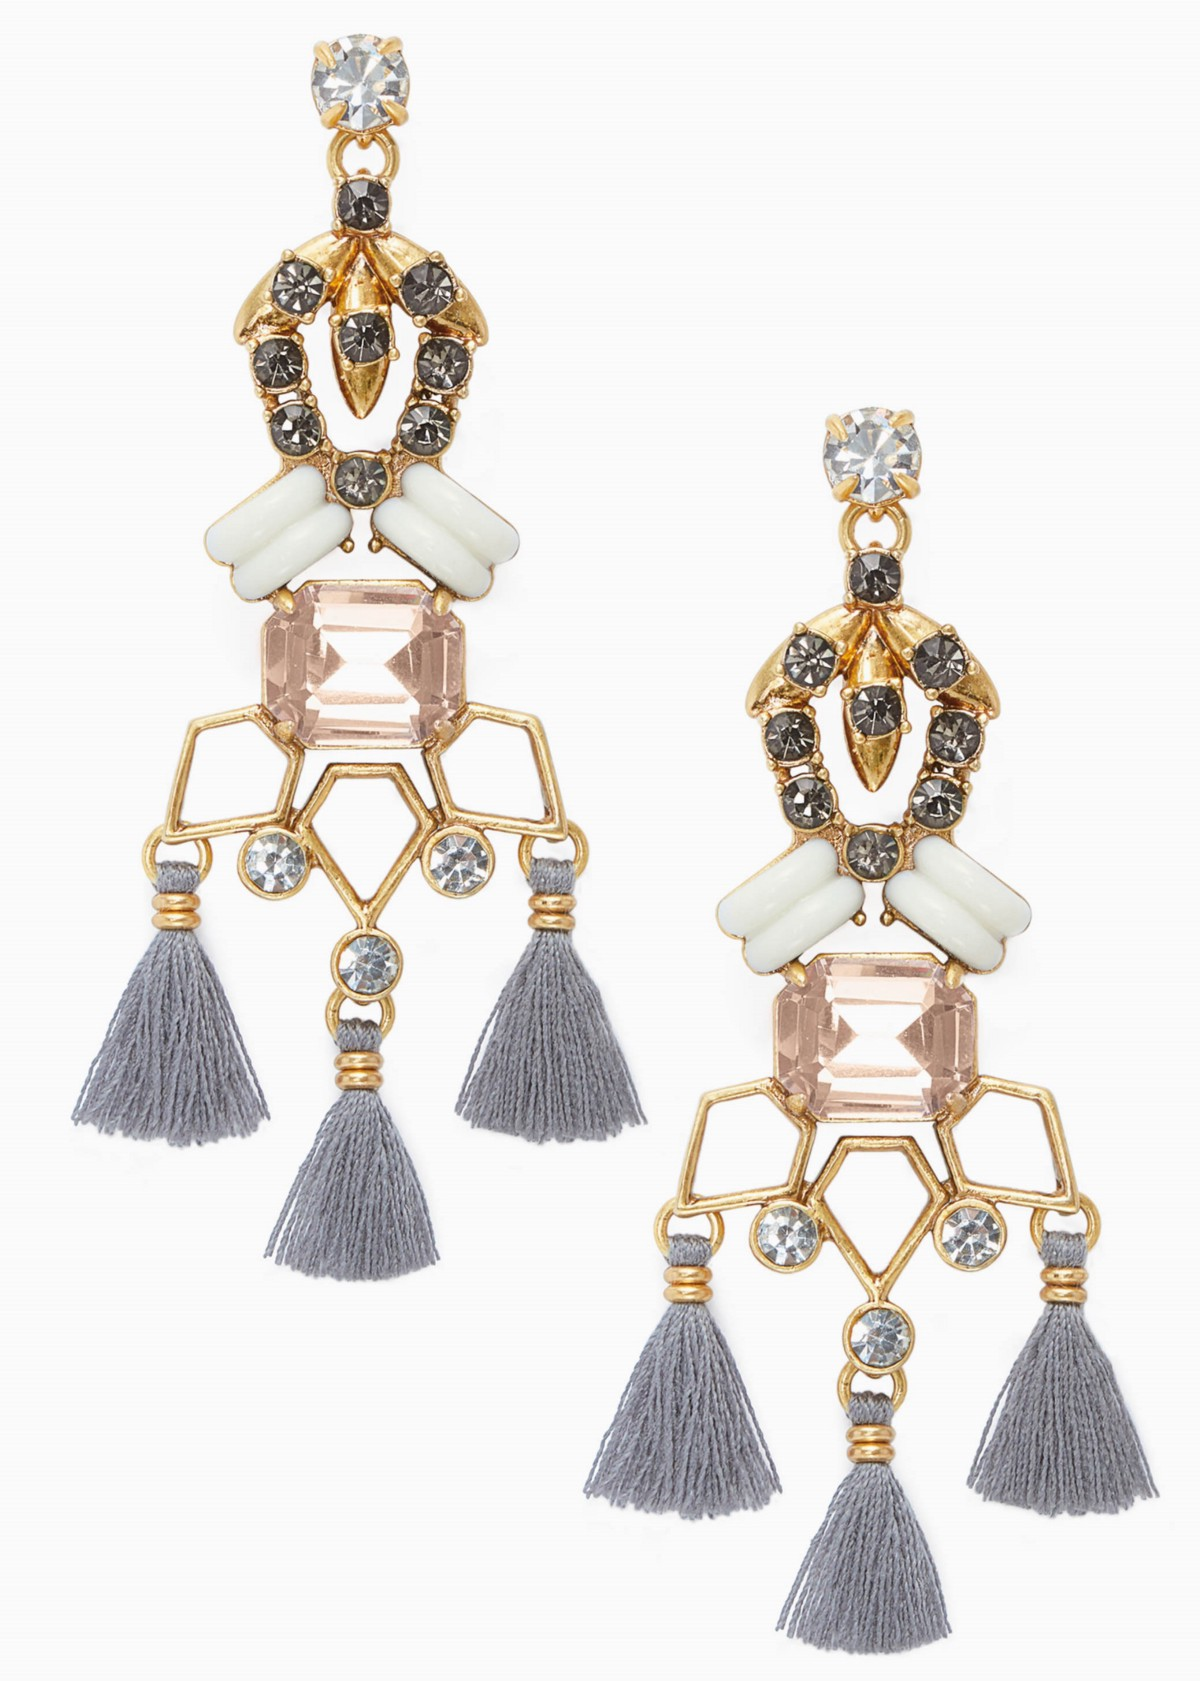 How stella and dot got me out of my jewelry rut plus my picks for today cecily chandelier earrings on sale for 3499 and nila chandelier earrings on sale for 3499 it was inevitable that i would highlight a couple of arubaitofo Image collections